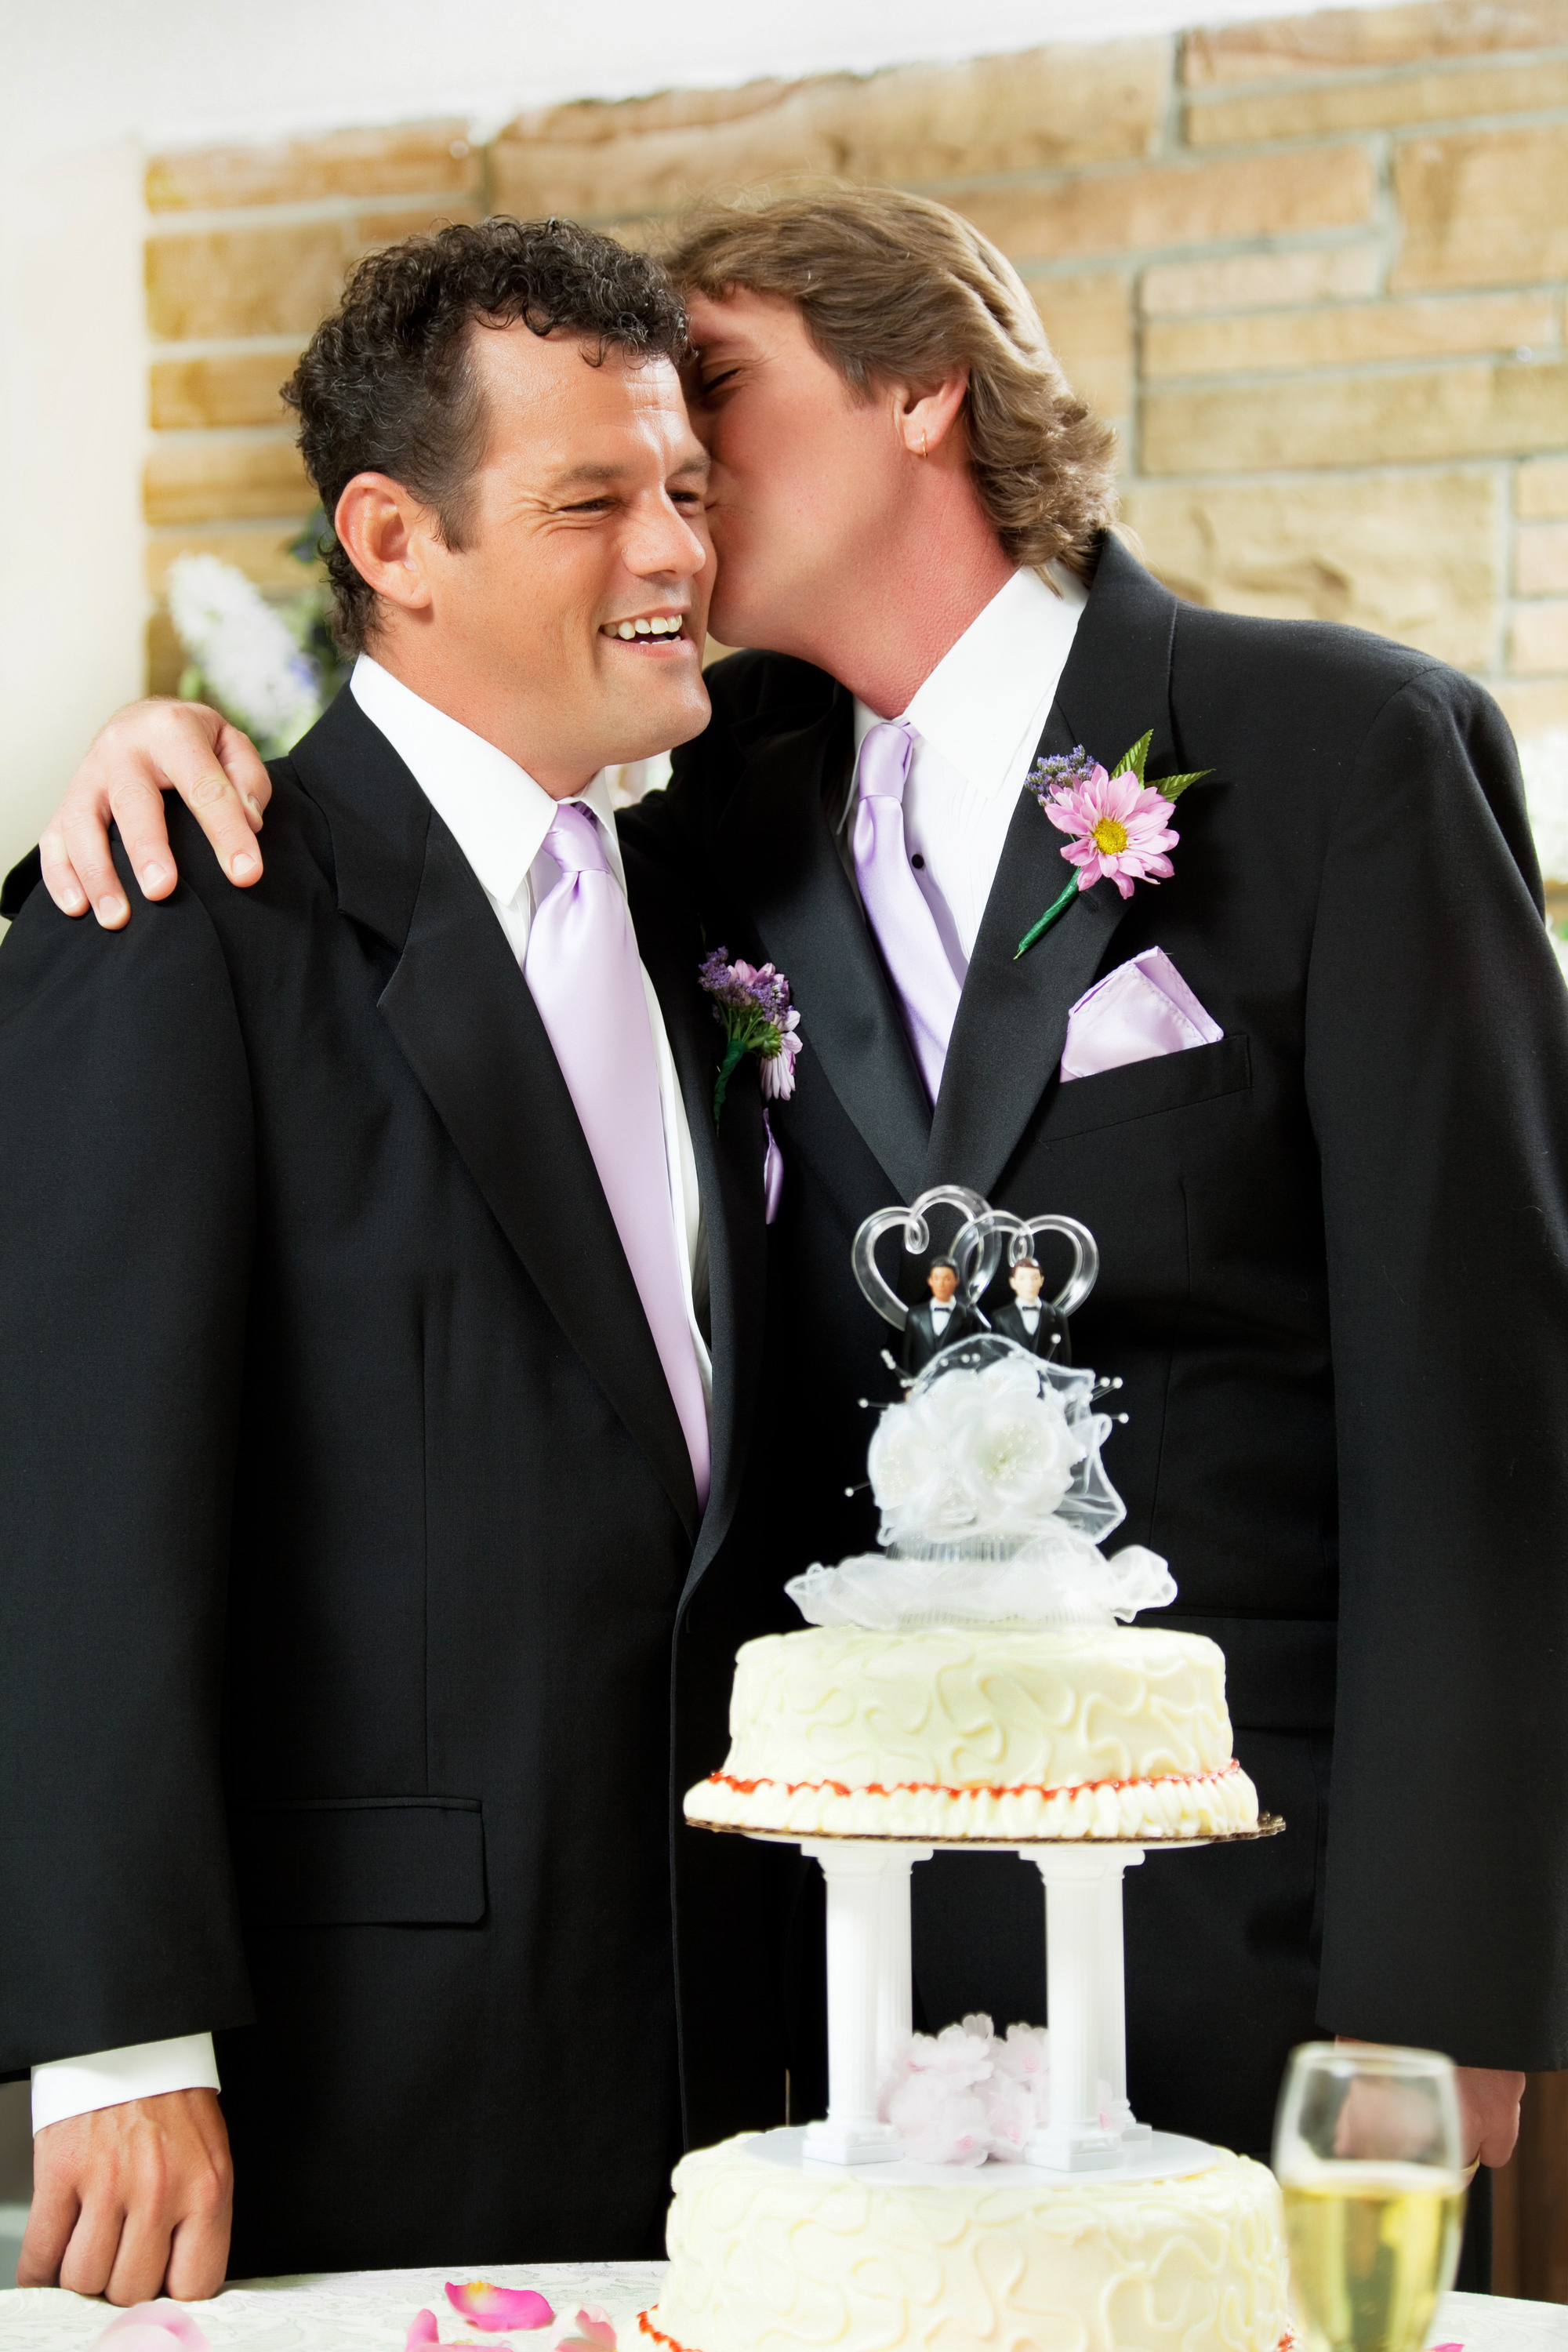 Kansas-city-gay-wedding-affectionate-moment-l (1).jpg